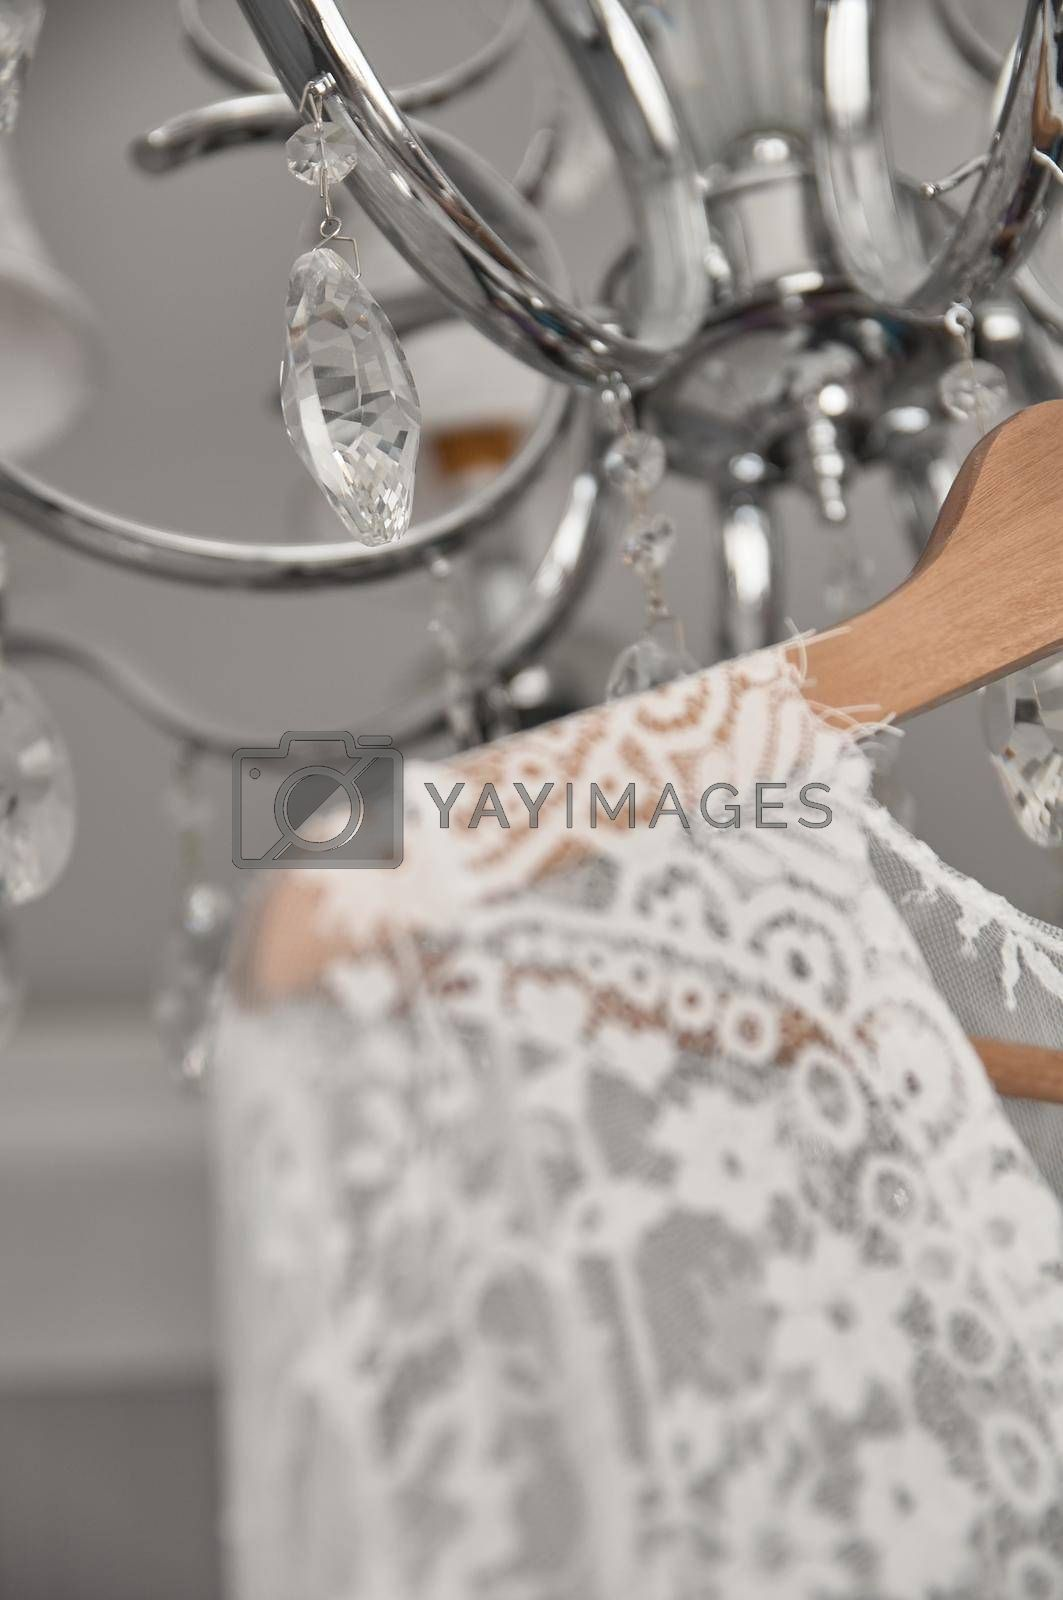 wedding peignoir hanging on the chandelier in the room